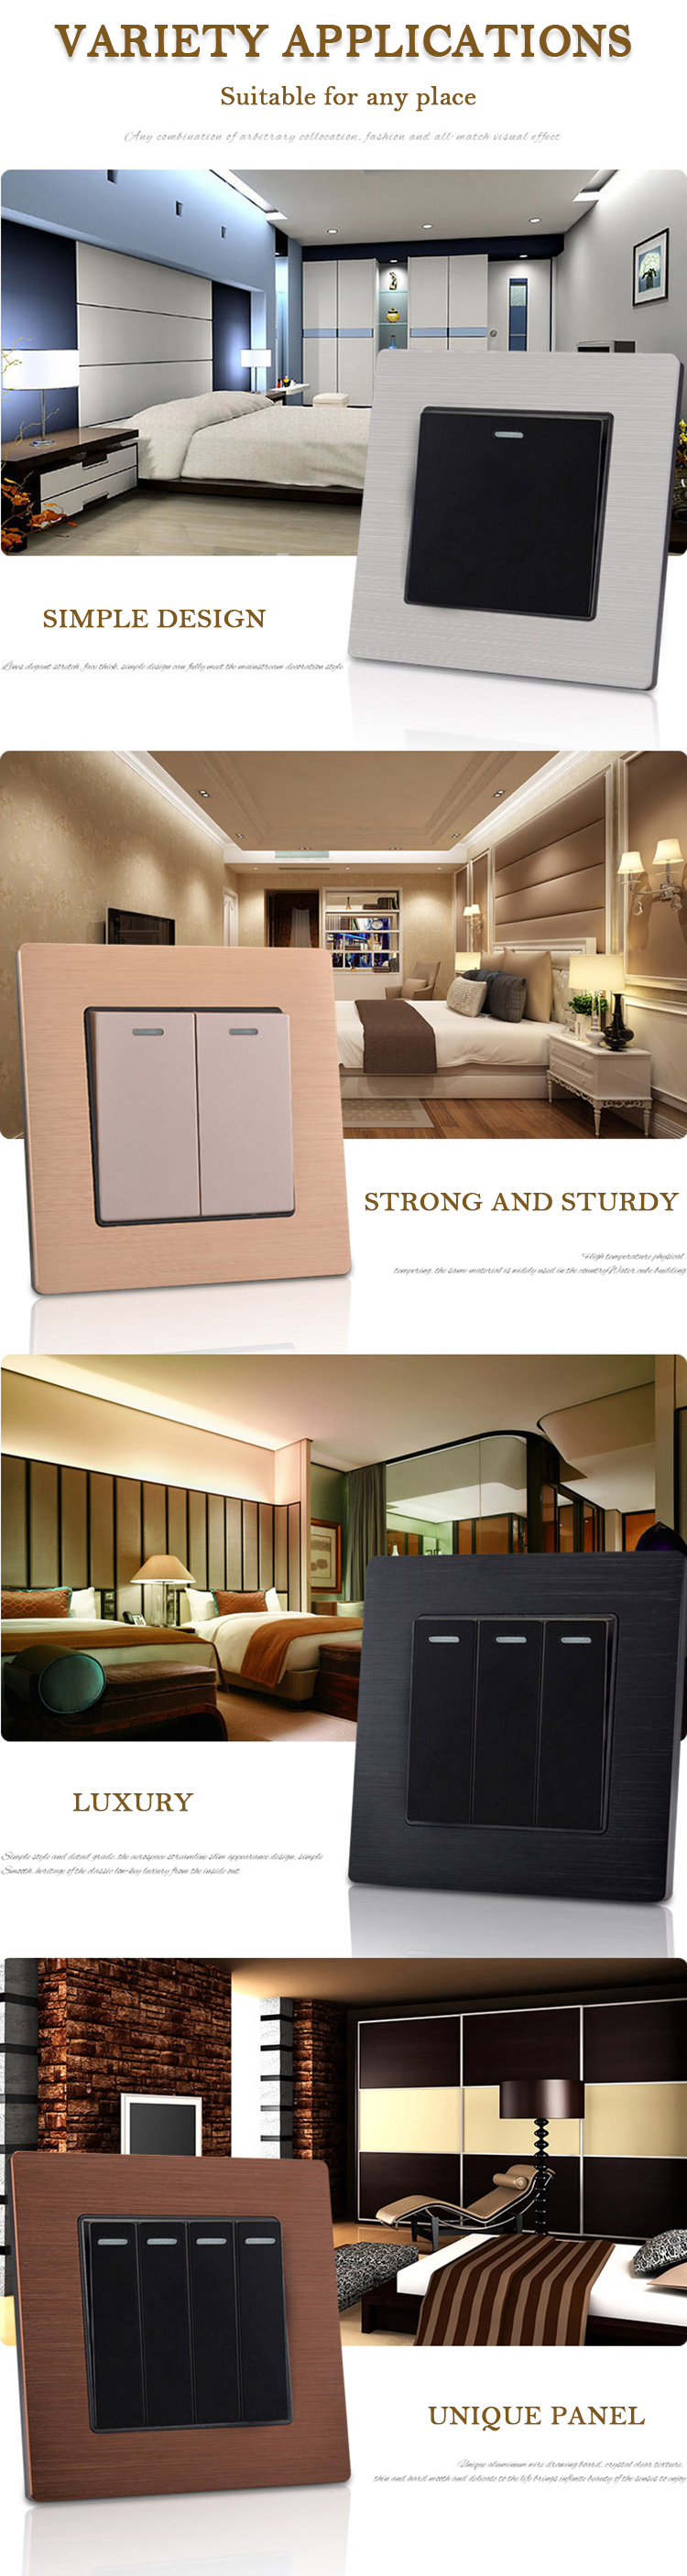 cabinet door light switch ,zigbee power switch ,double usb powerpoint